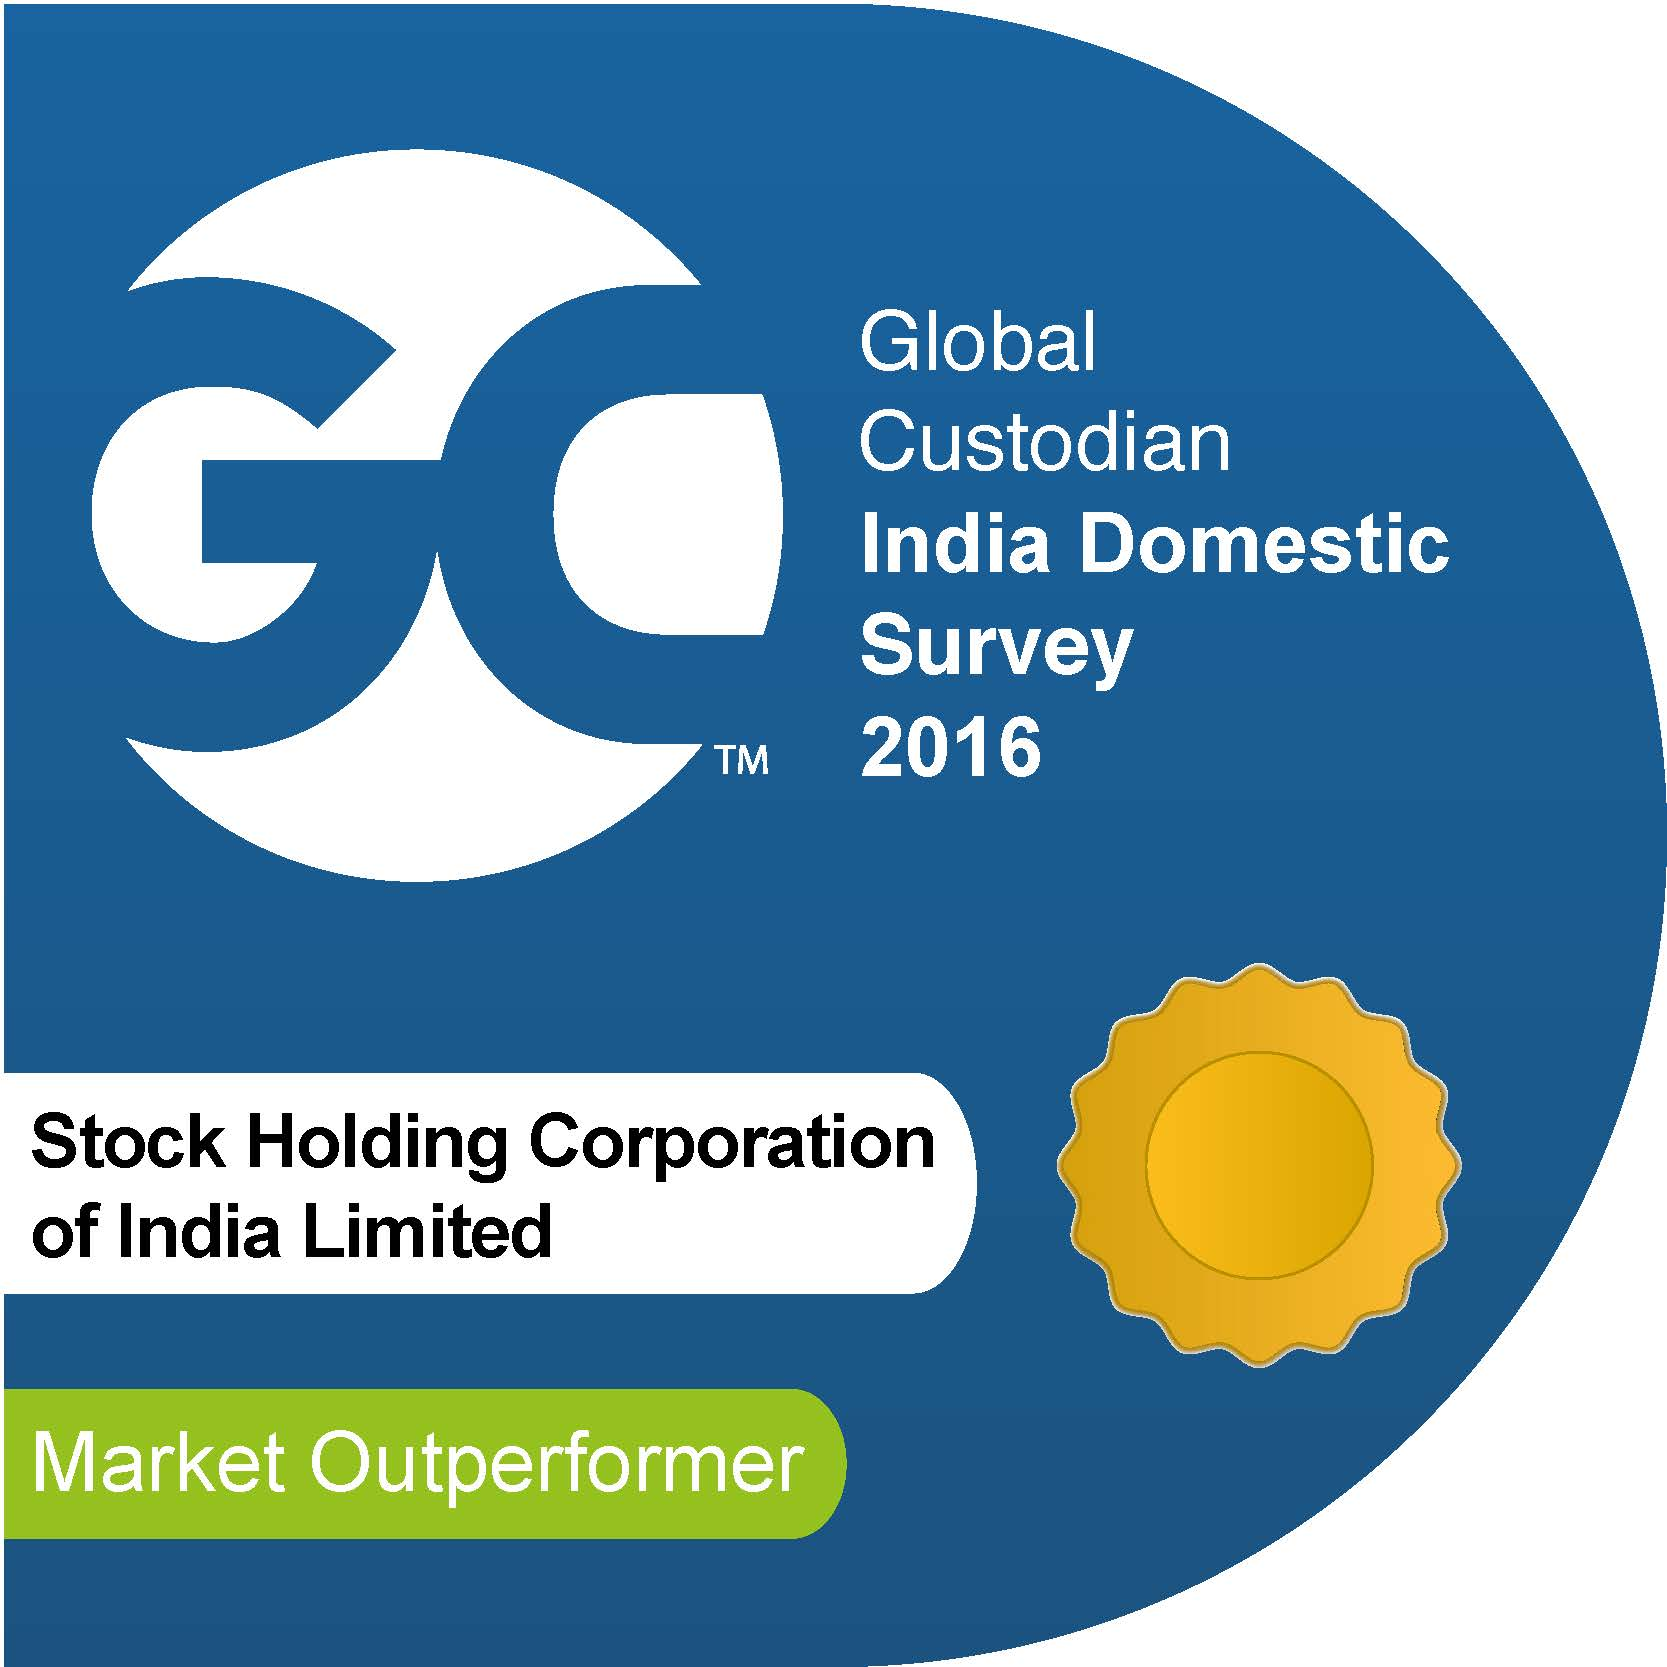 StockHolding Corporation Of India Limited MaO BEST CUSTODIAN BUSINESS EXCELLENCE